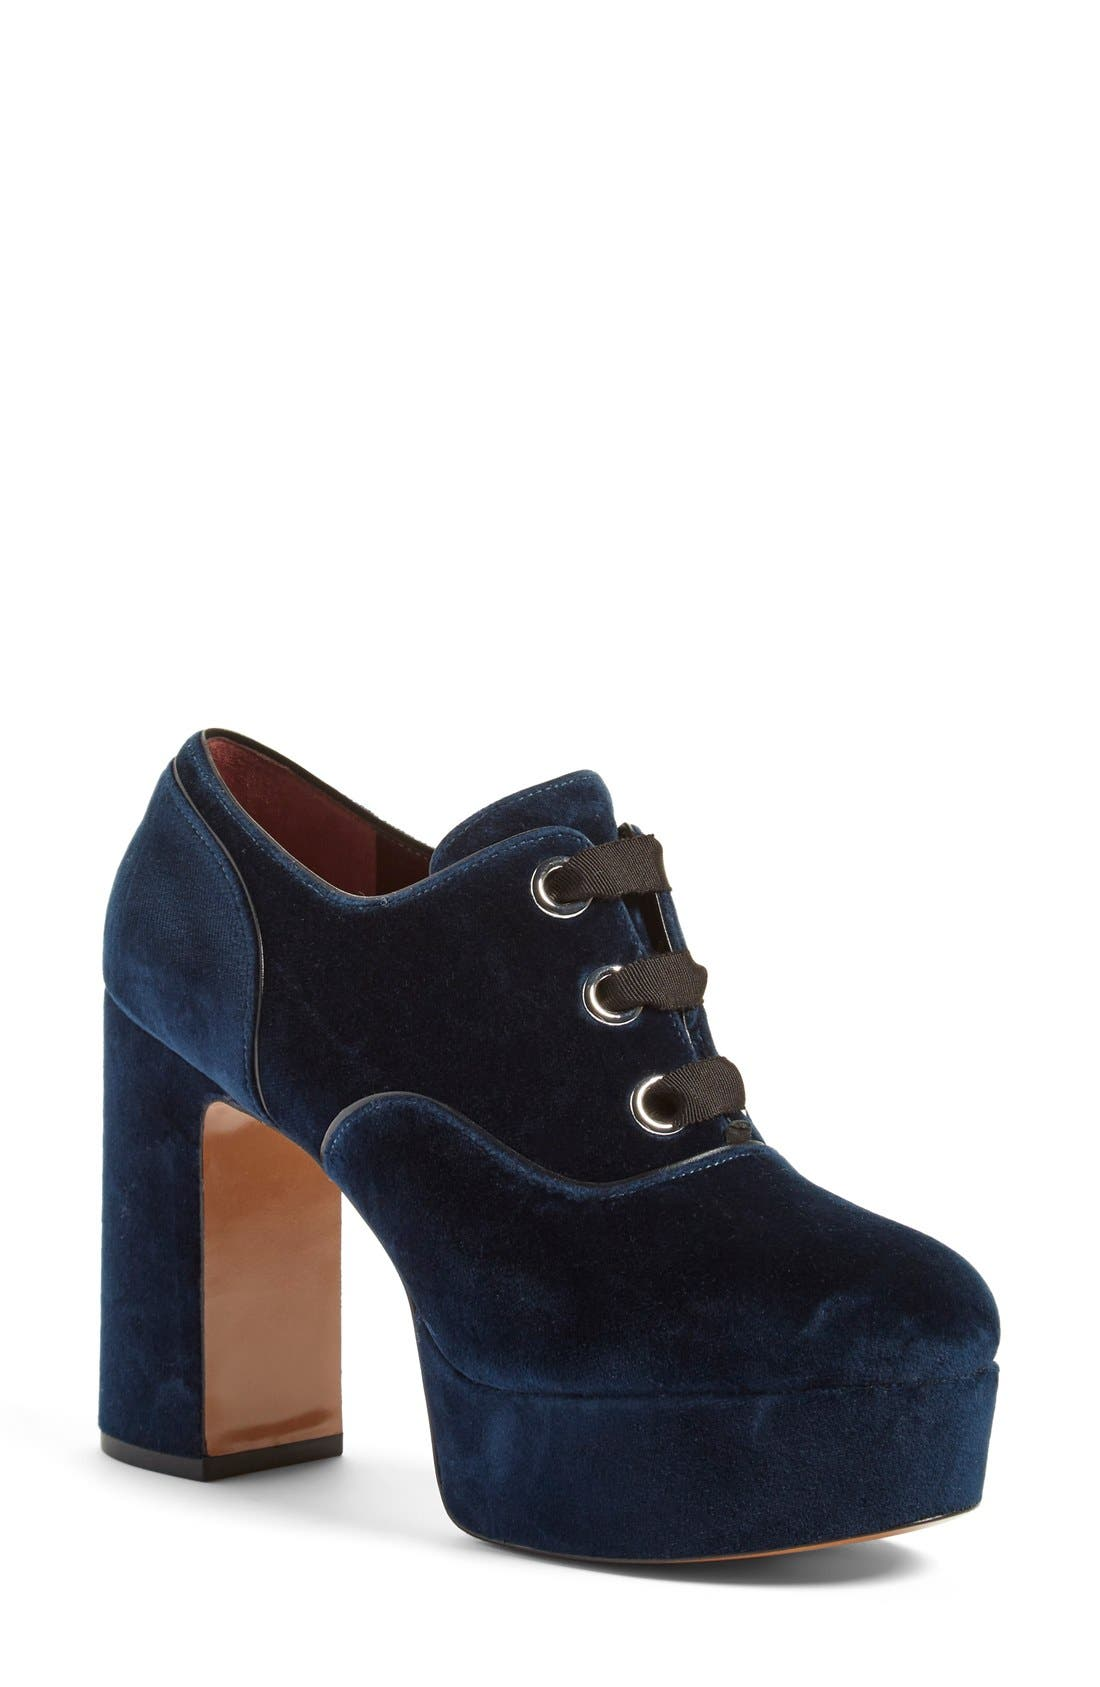 Alternate Image 1 Selected - MARC JACOBS 'Beth' Oxford Pump (Women)